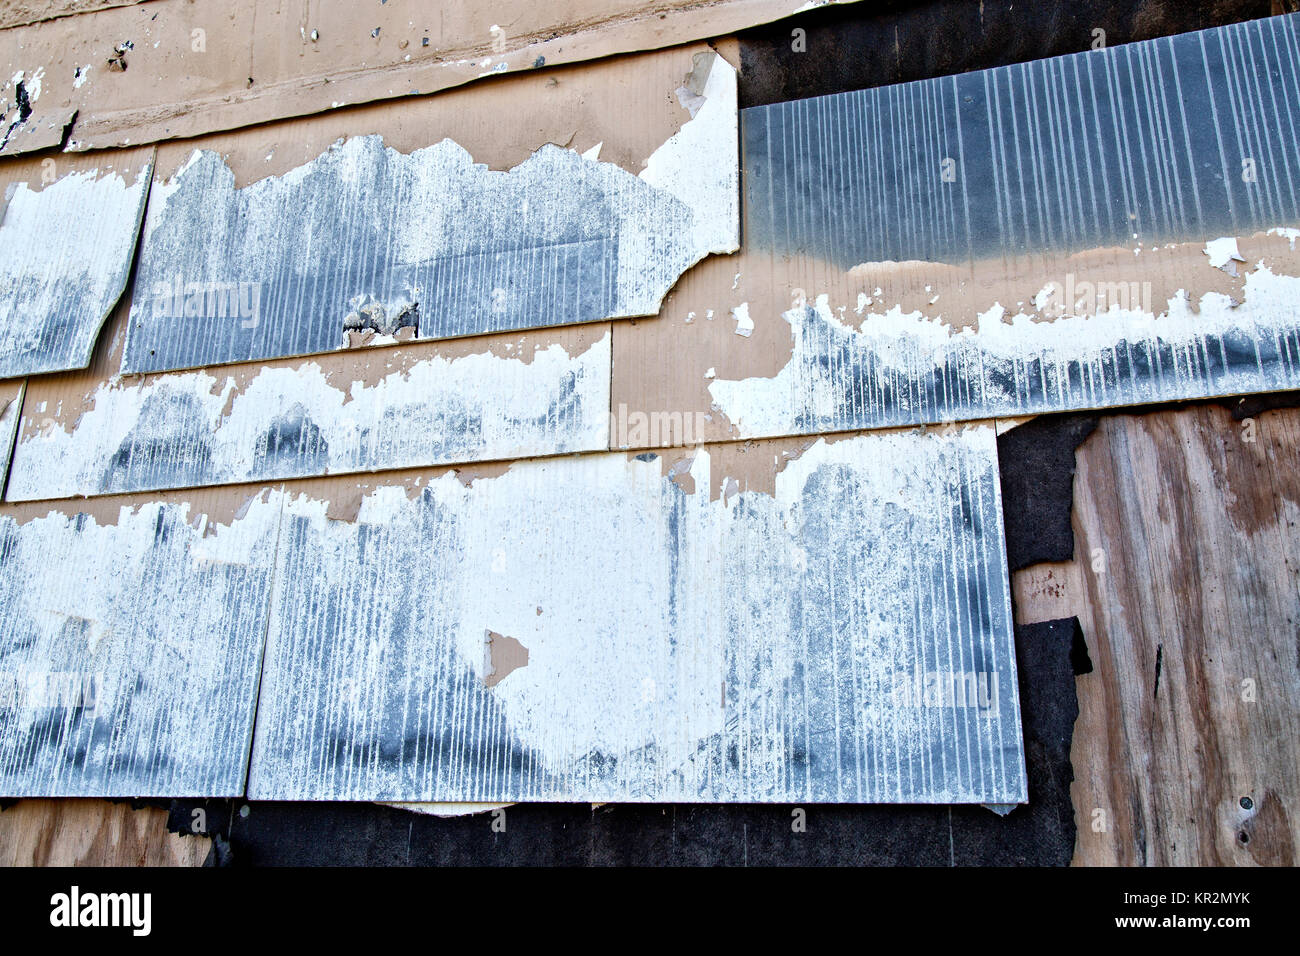 Old asbestos shingle siding attached to exterior structure wall. - Stock Image